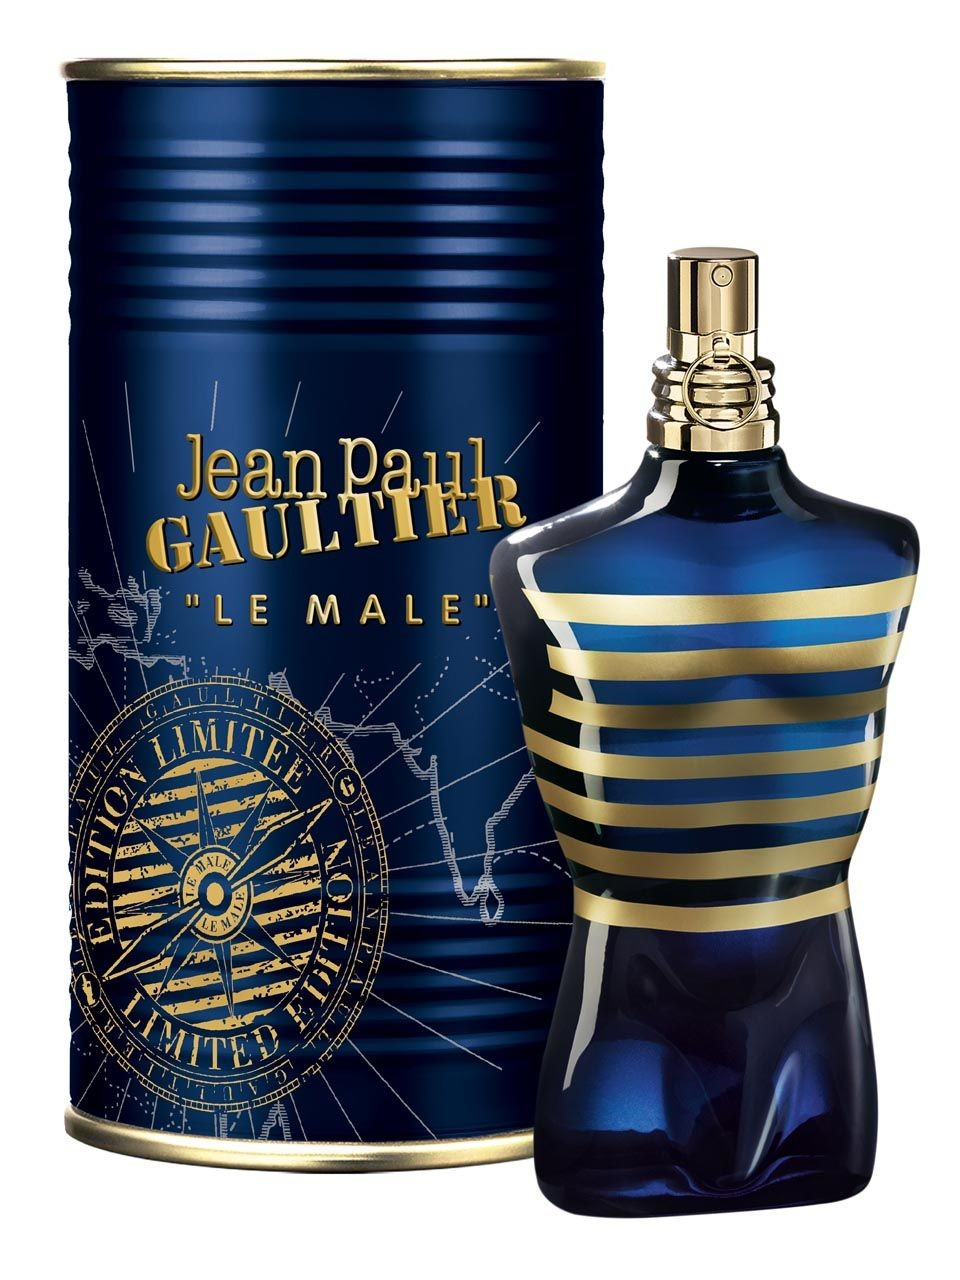 Le male capitaine collector jean paul gaultier cologne a - Le male jean paul gaultier pas cher ...